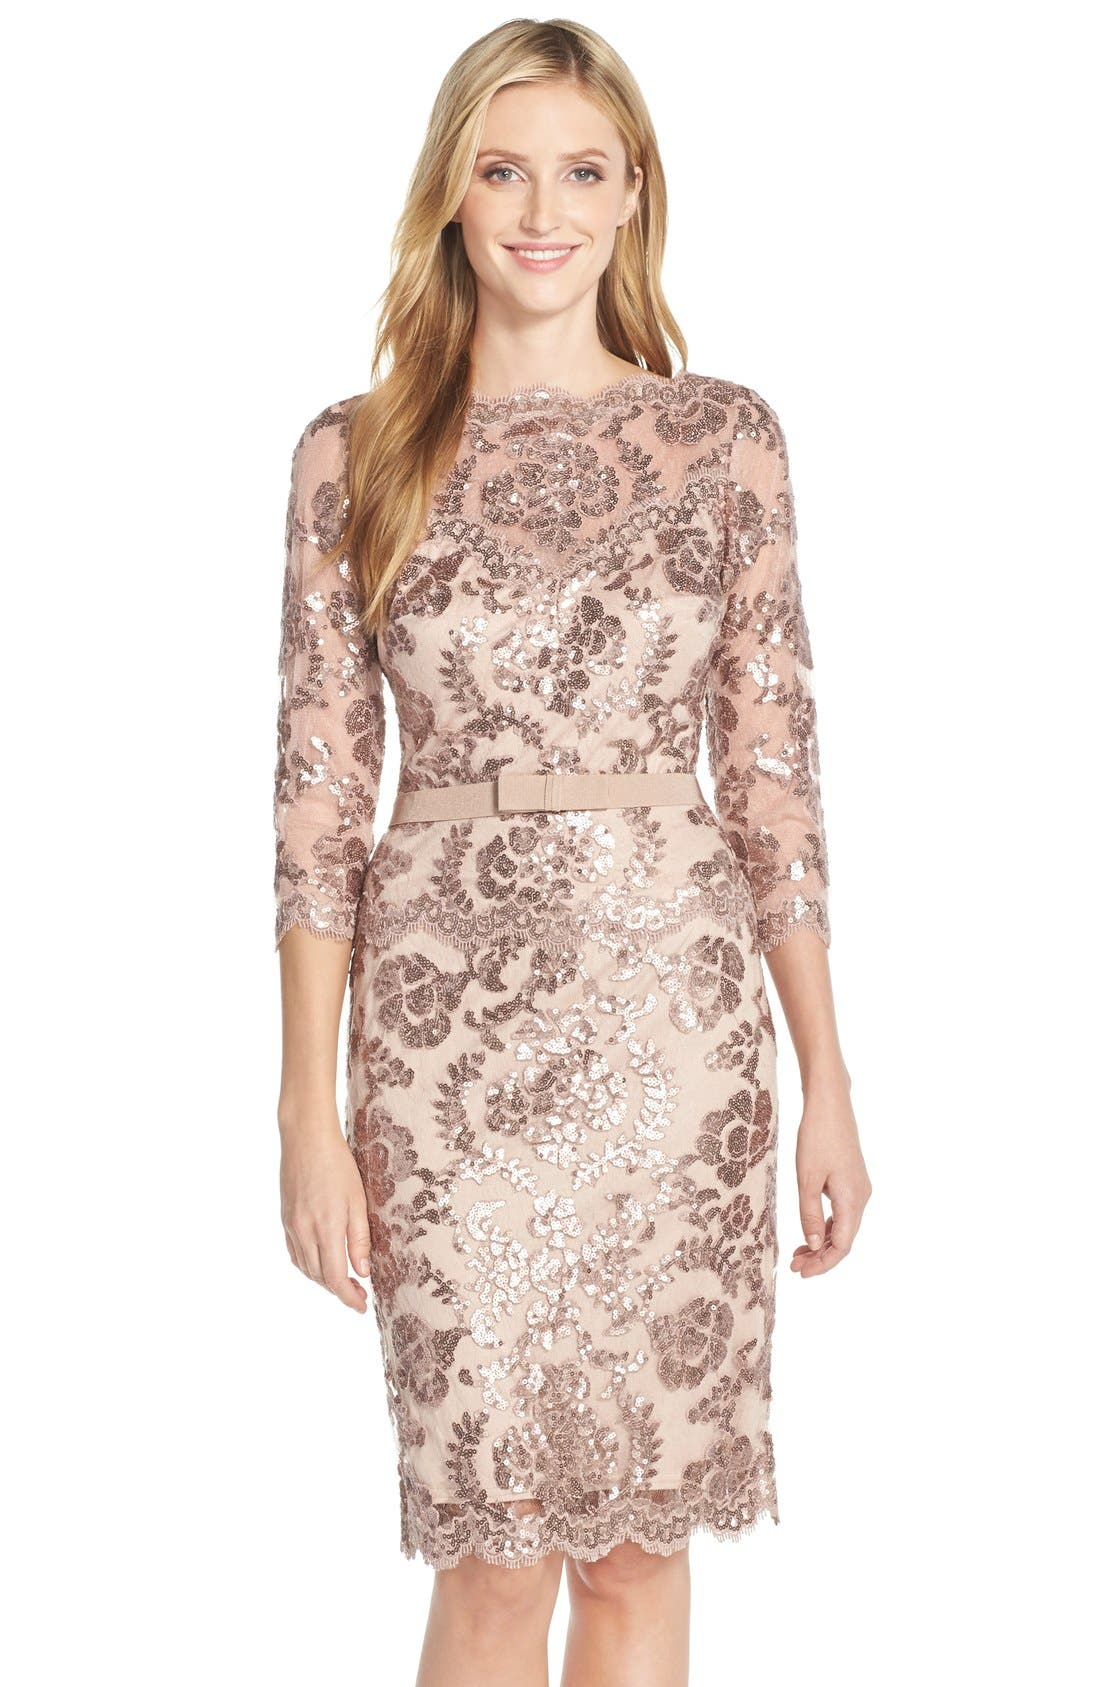 Alternate Image 1 Selected - Tadashi Shoji Embroidered Lace Belted Dress (Regular & Petite)